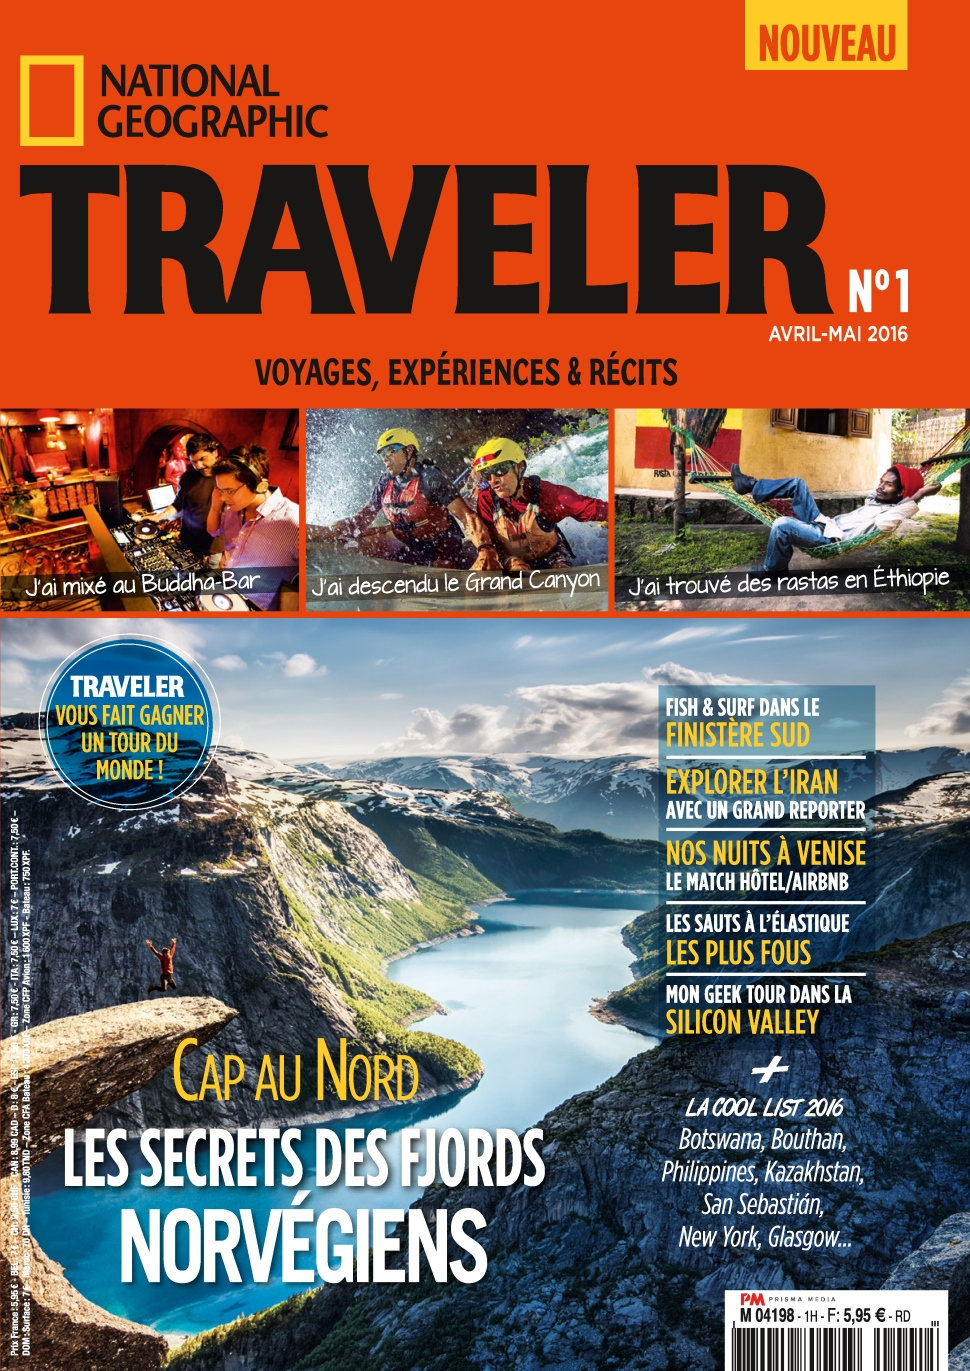 National Geographic Traveler N°1 - Les Secrets Des Fjords Norvégiens